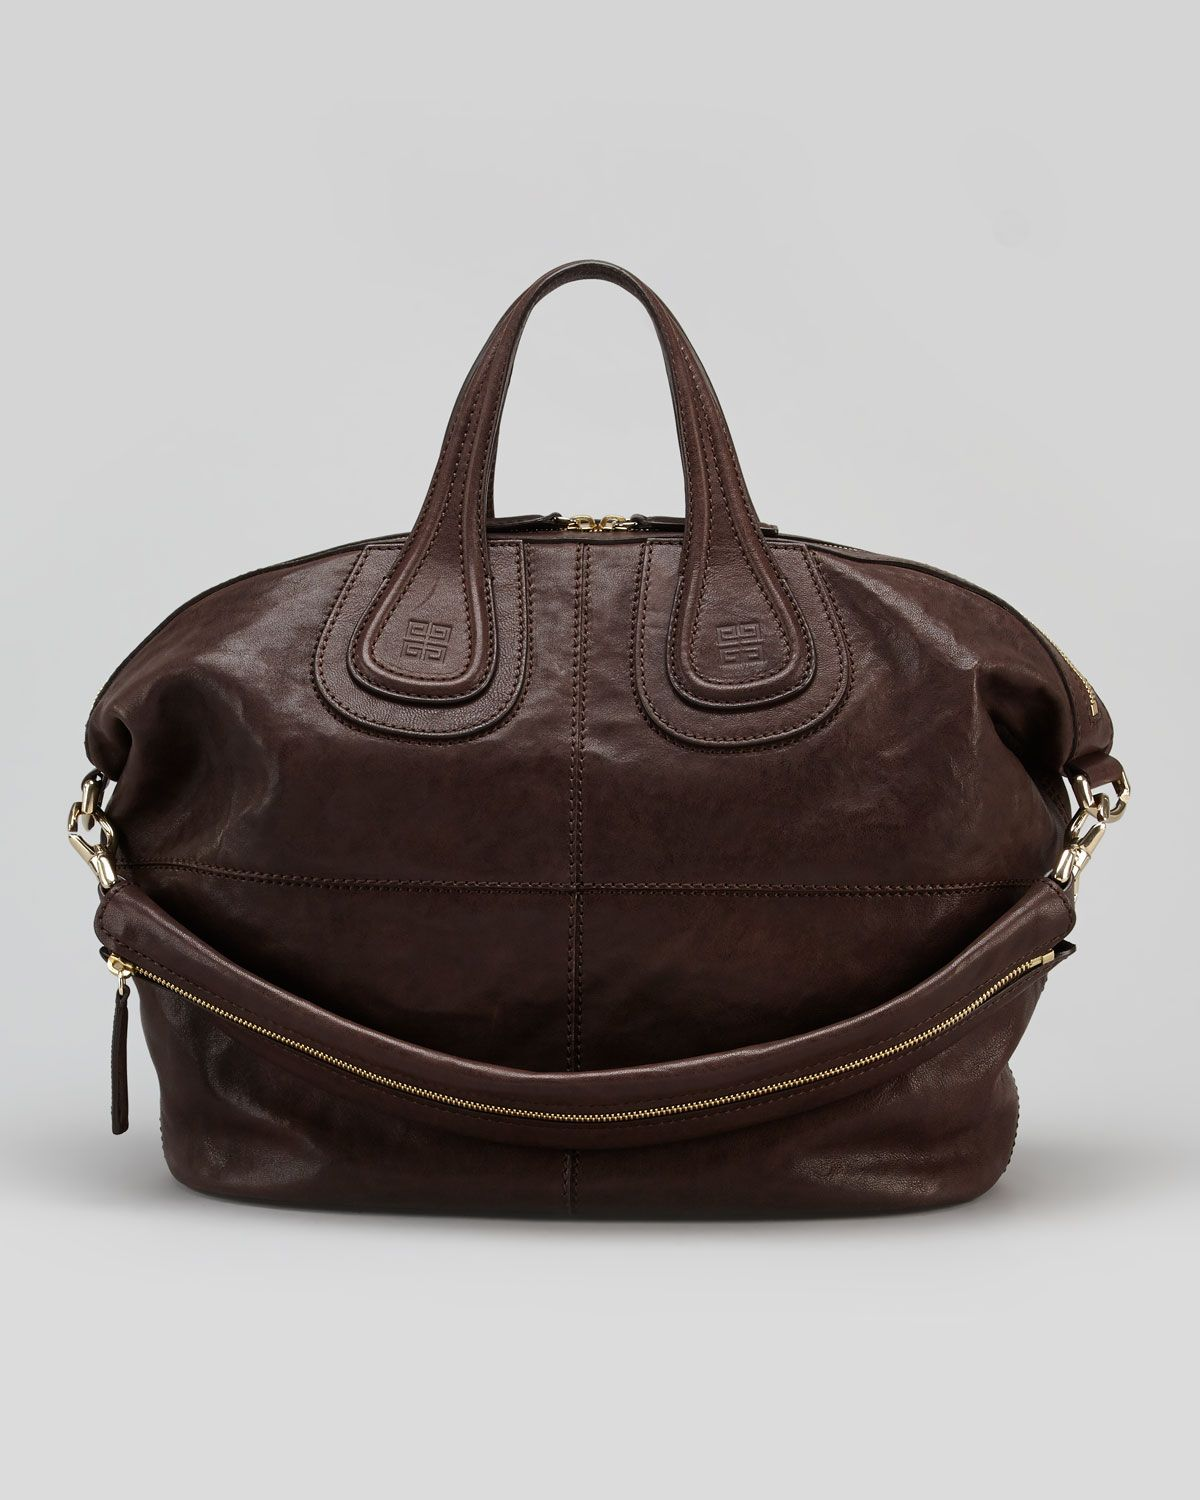 26ebe86a6c4 Givenchy Nightingale Zanzi Medium Satchel Bag in Brown (chocolate) | Lyst